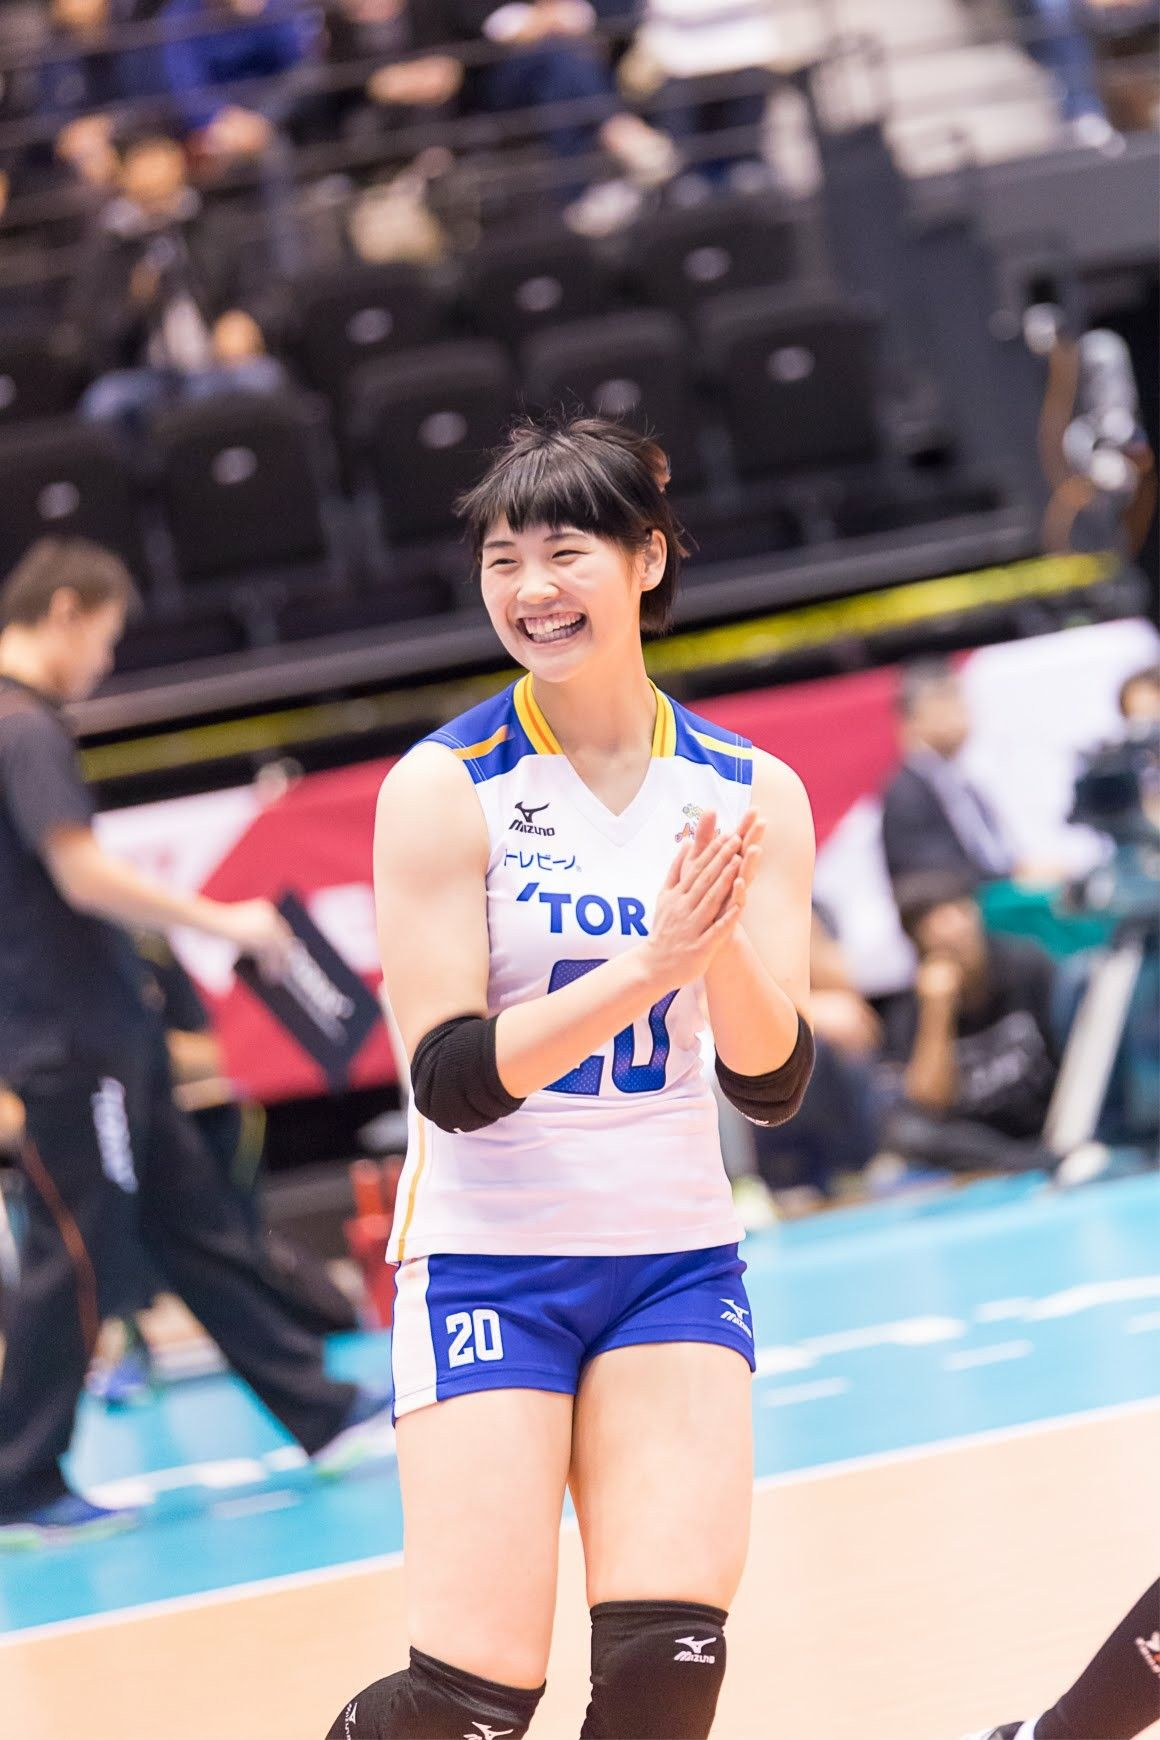 Pin By Pin Interest On Toray Arrows Volleyball Clubs Volleyball Athlete